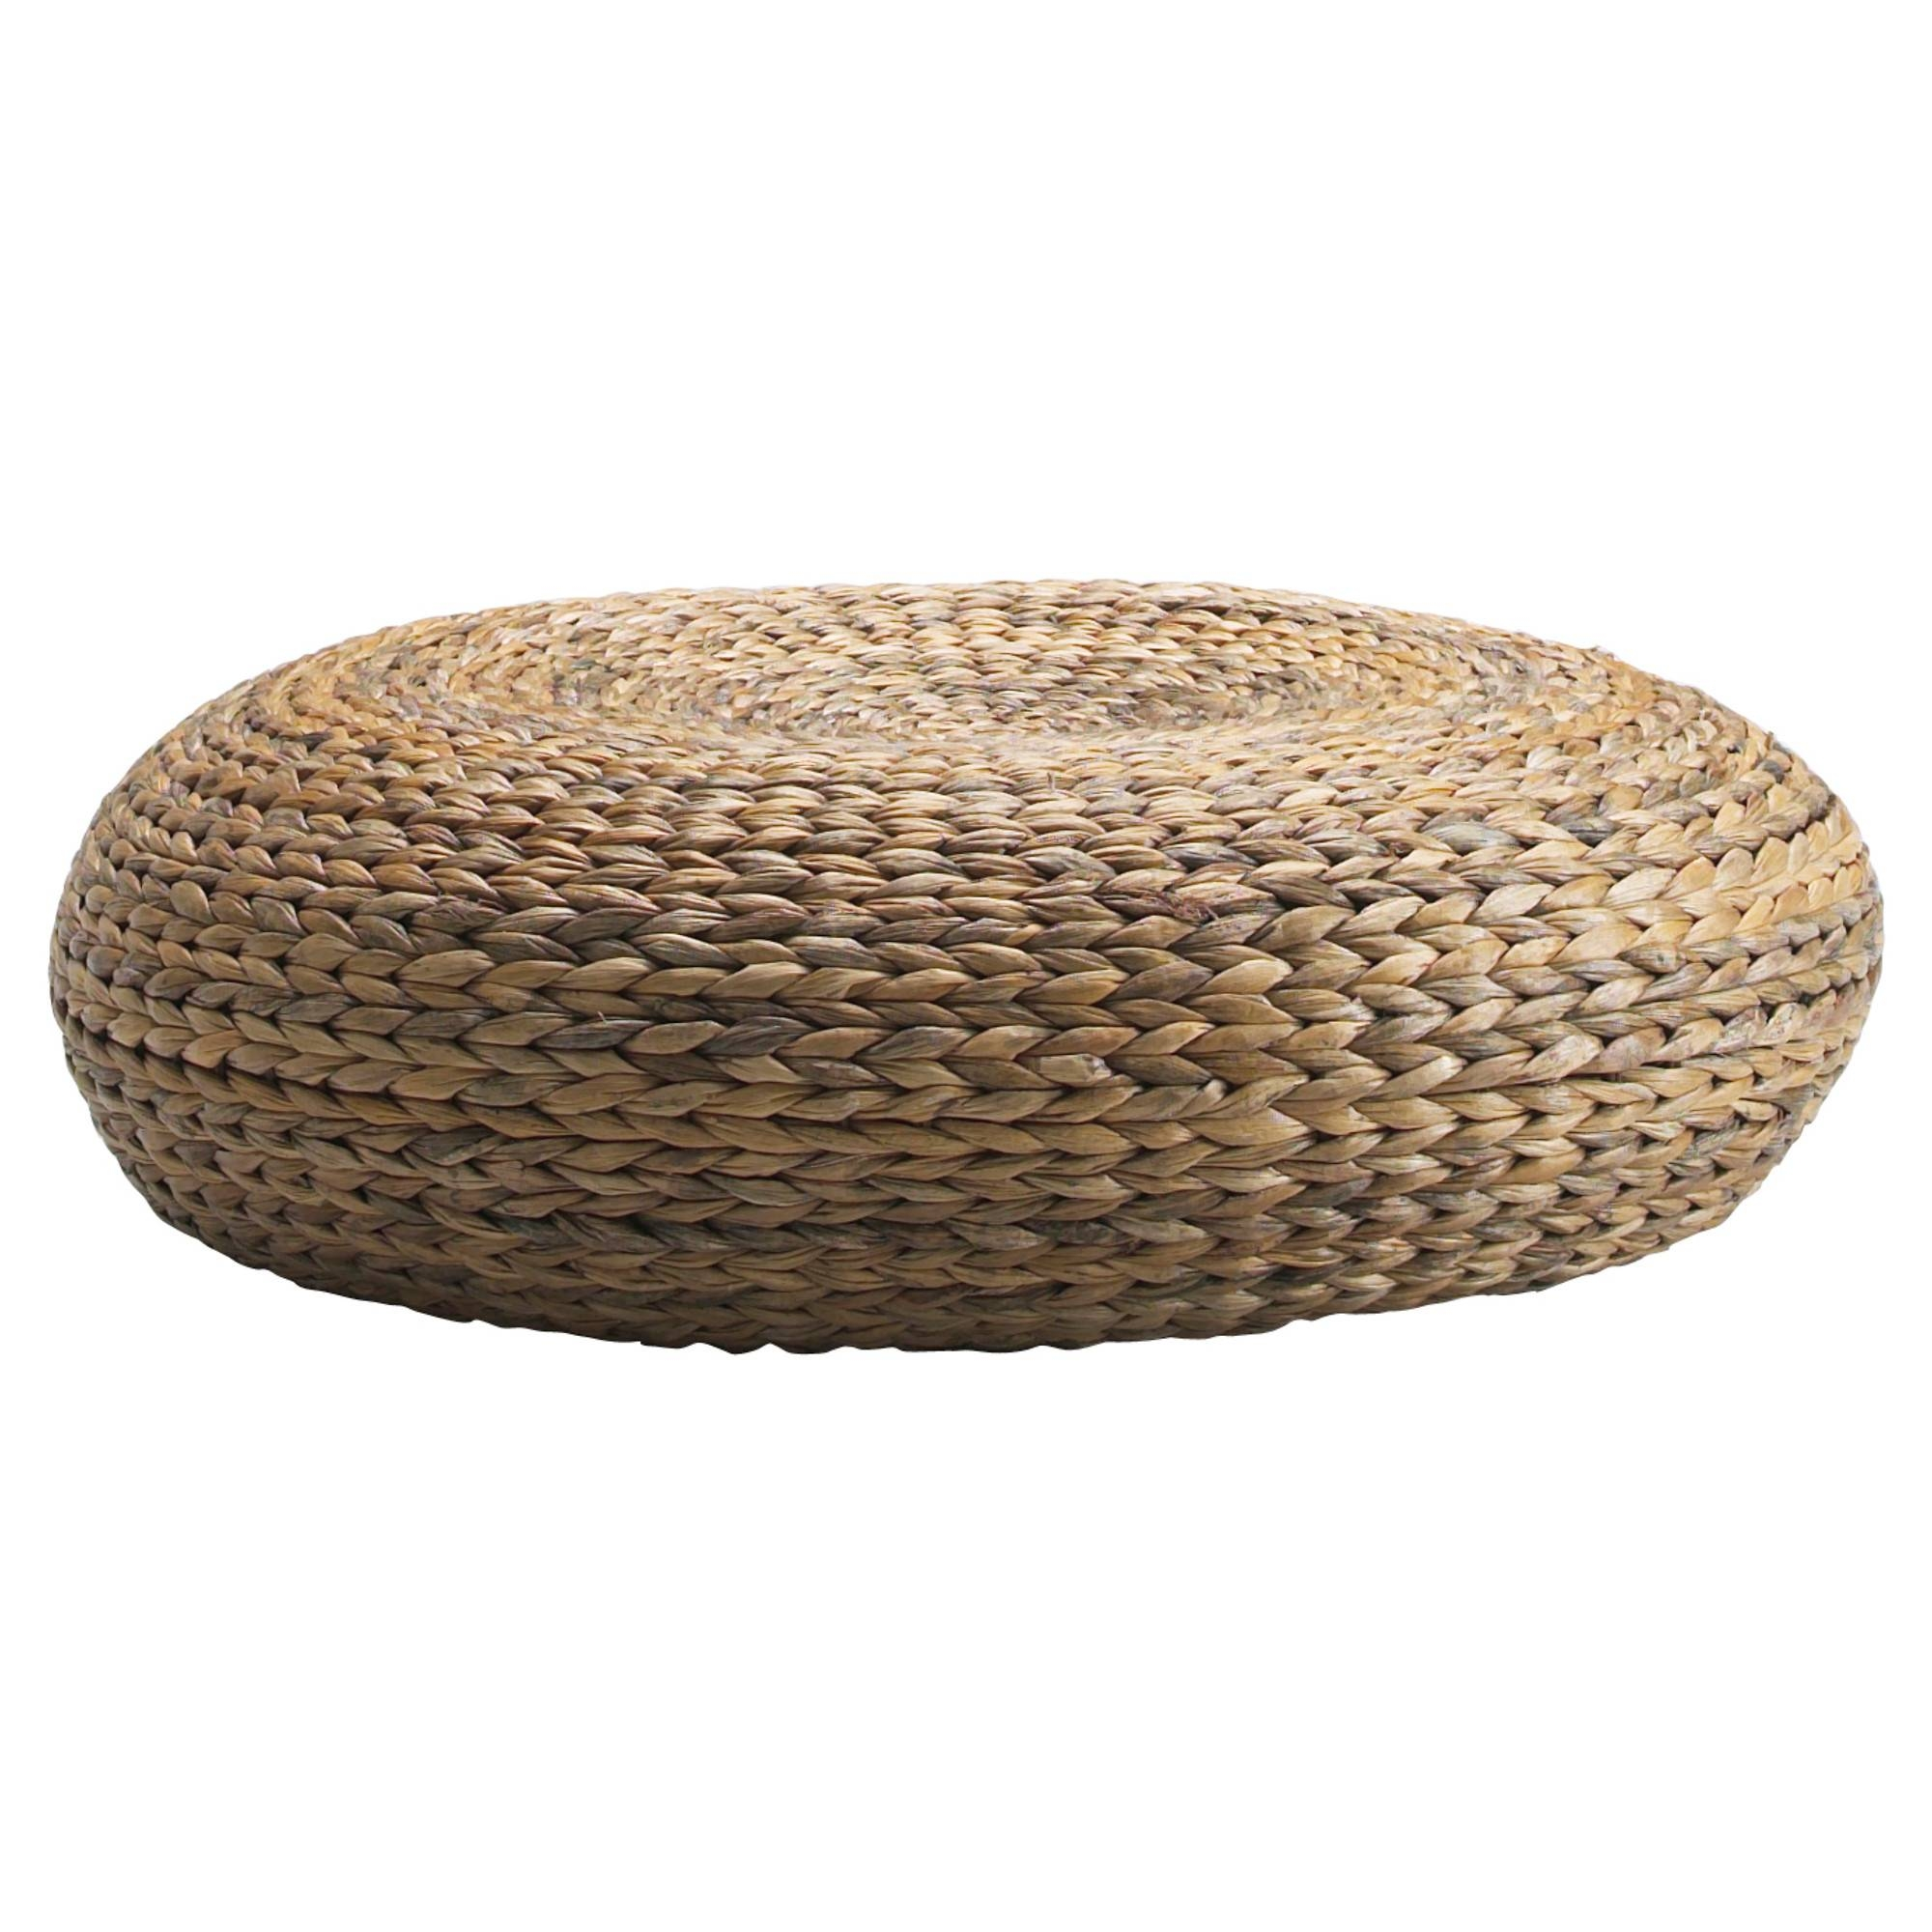 Rattan Footstools & Pouffes | Ikea with Footstools and Pouffes (Image 30 of 30)